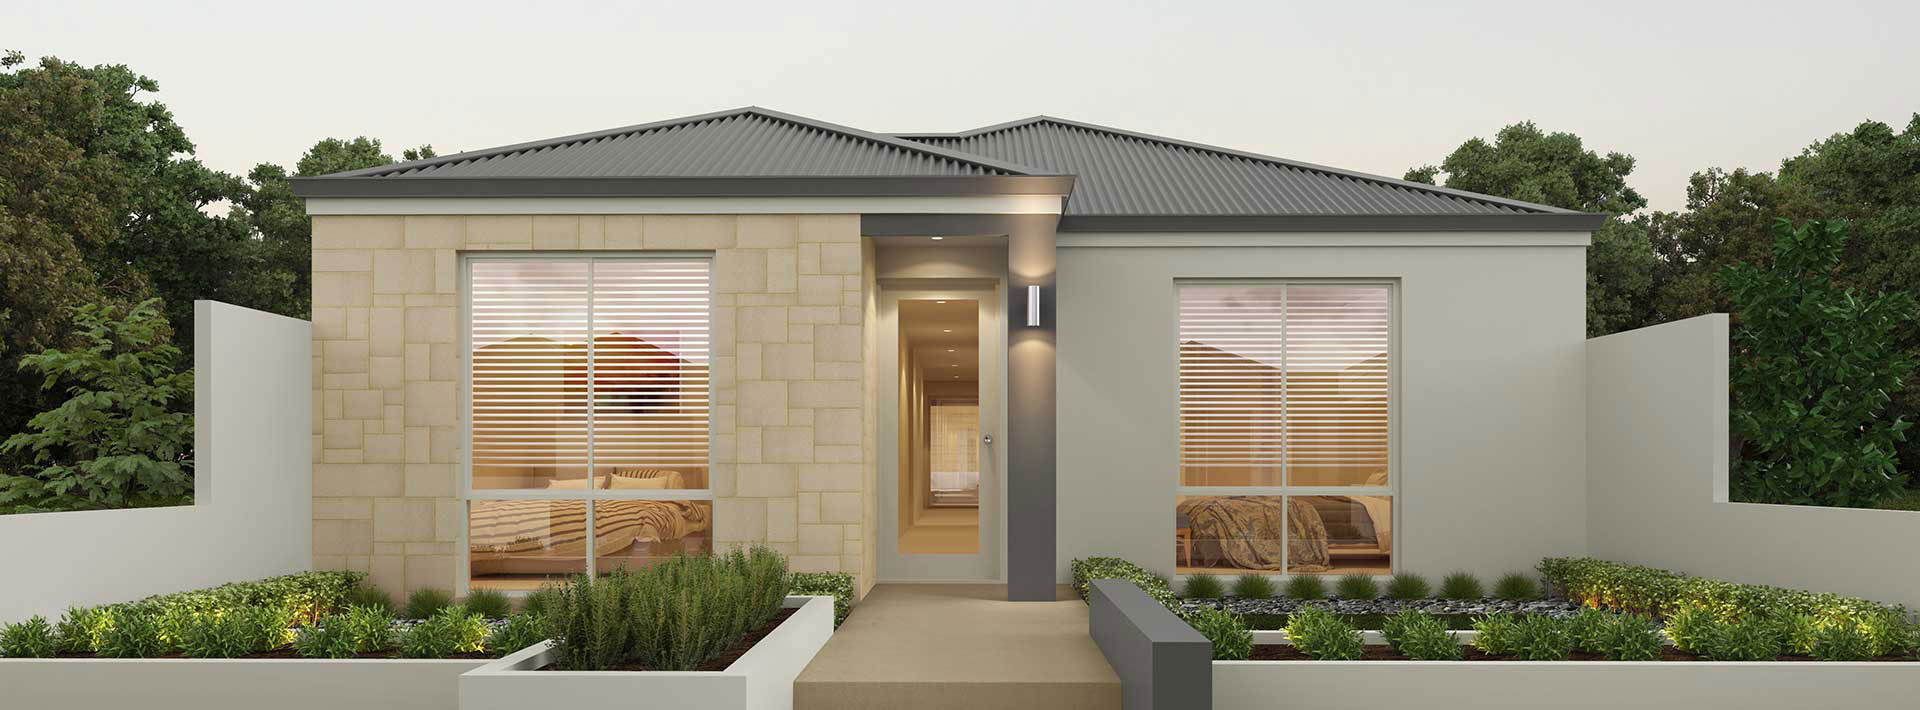 "Home frontage of single storey home design ""My Montana"""